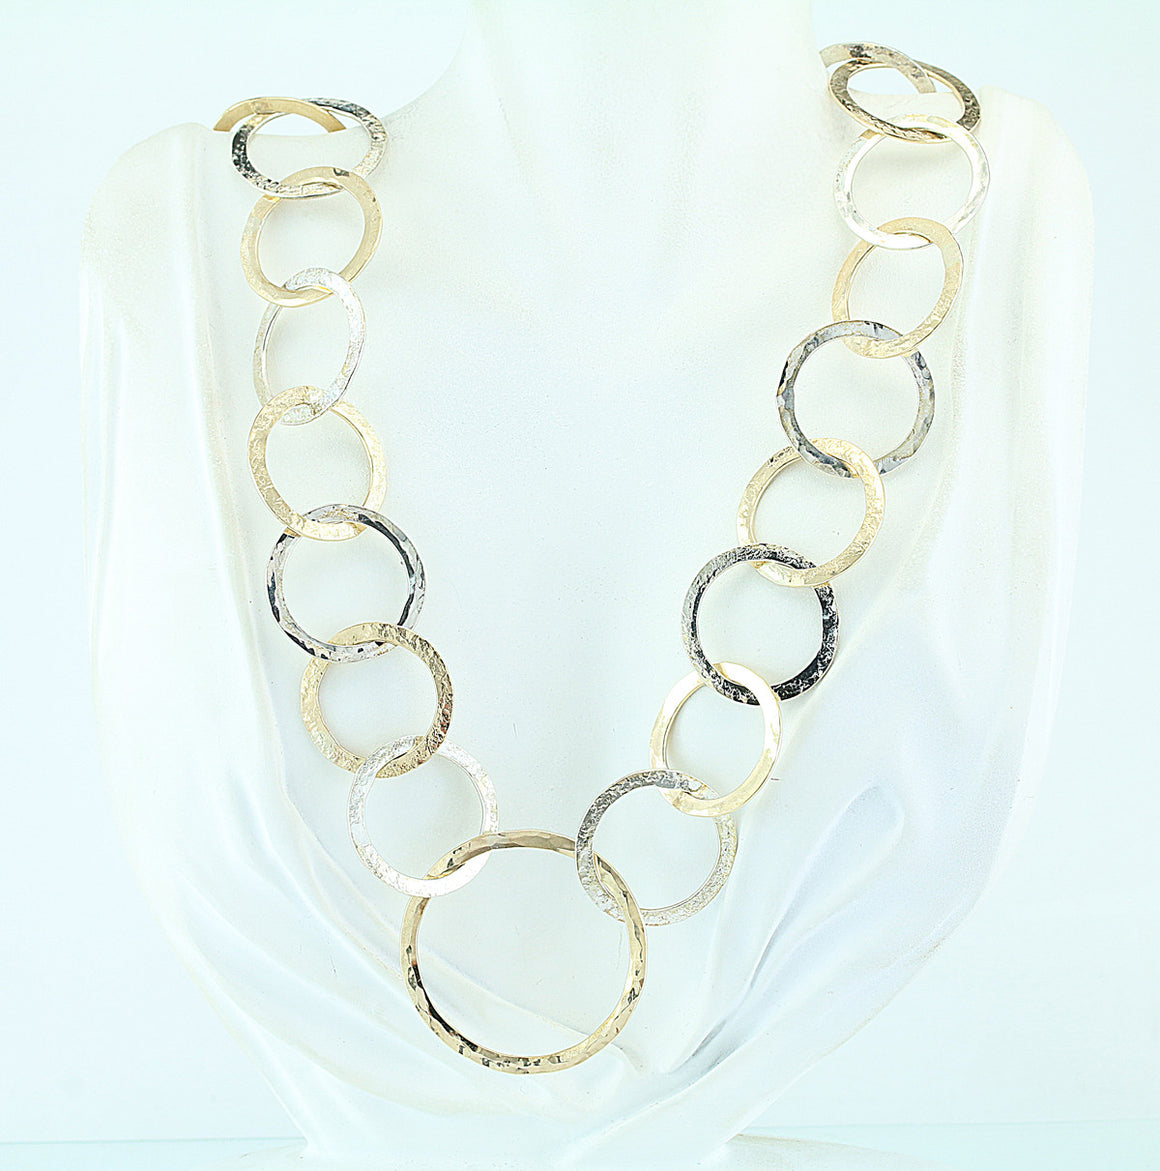 Hand Forged and Hammered Sterling and Gold Filled Circles Necklace 22""